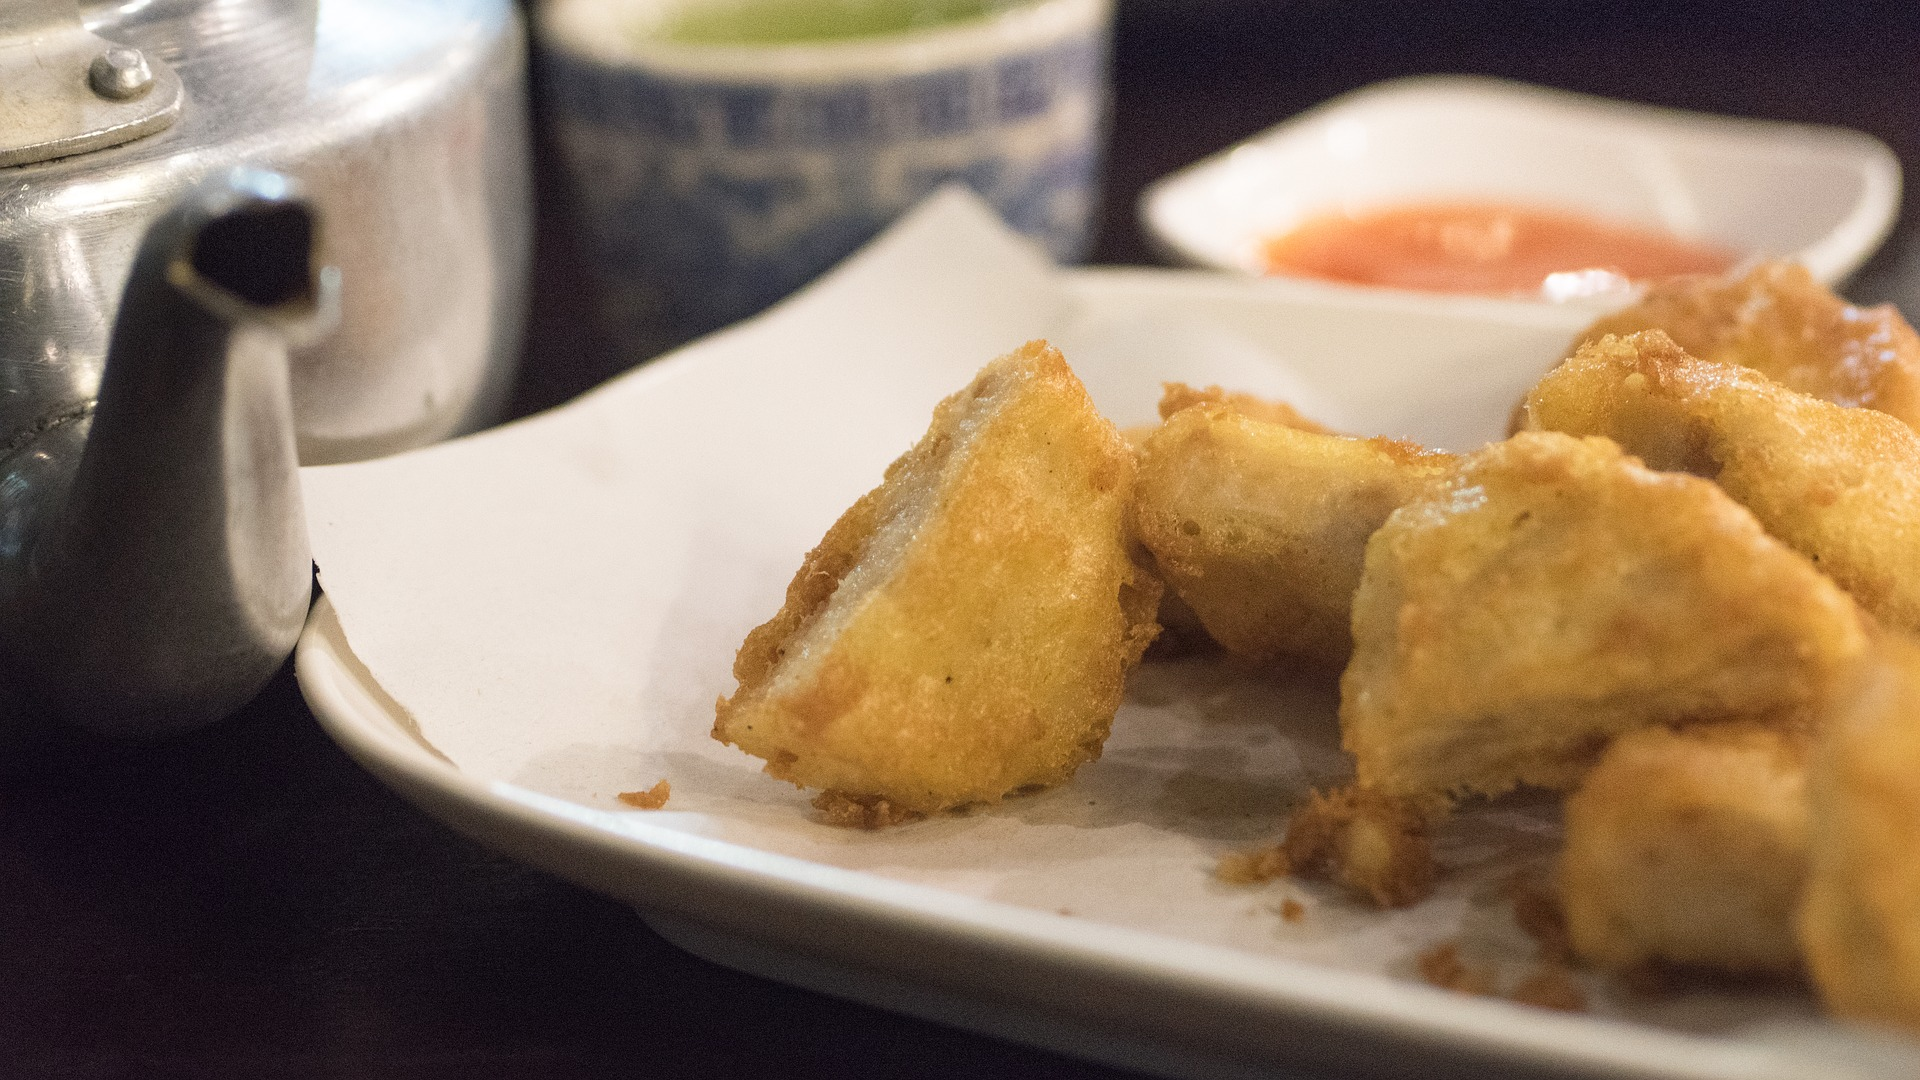 ultra processed foods like chicken nuggets linked to